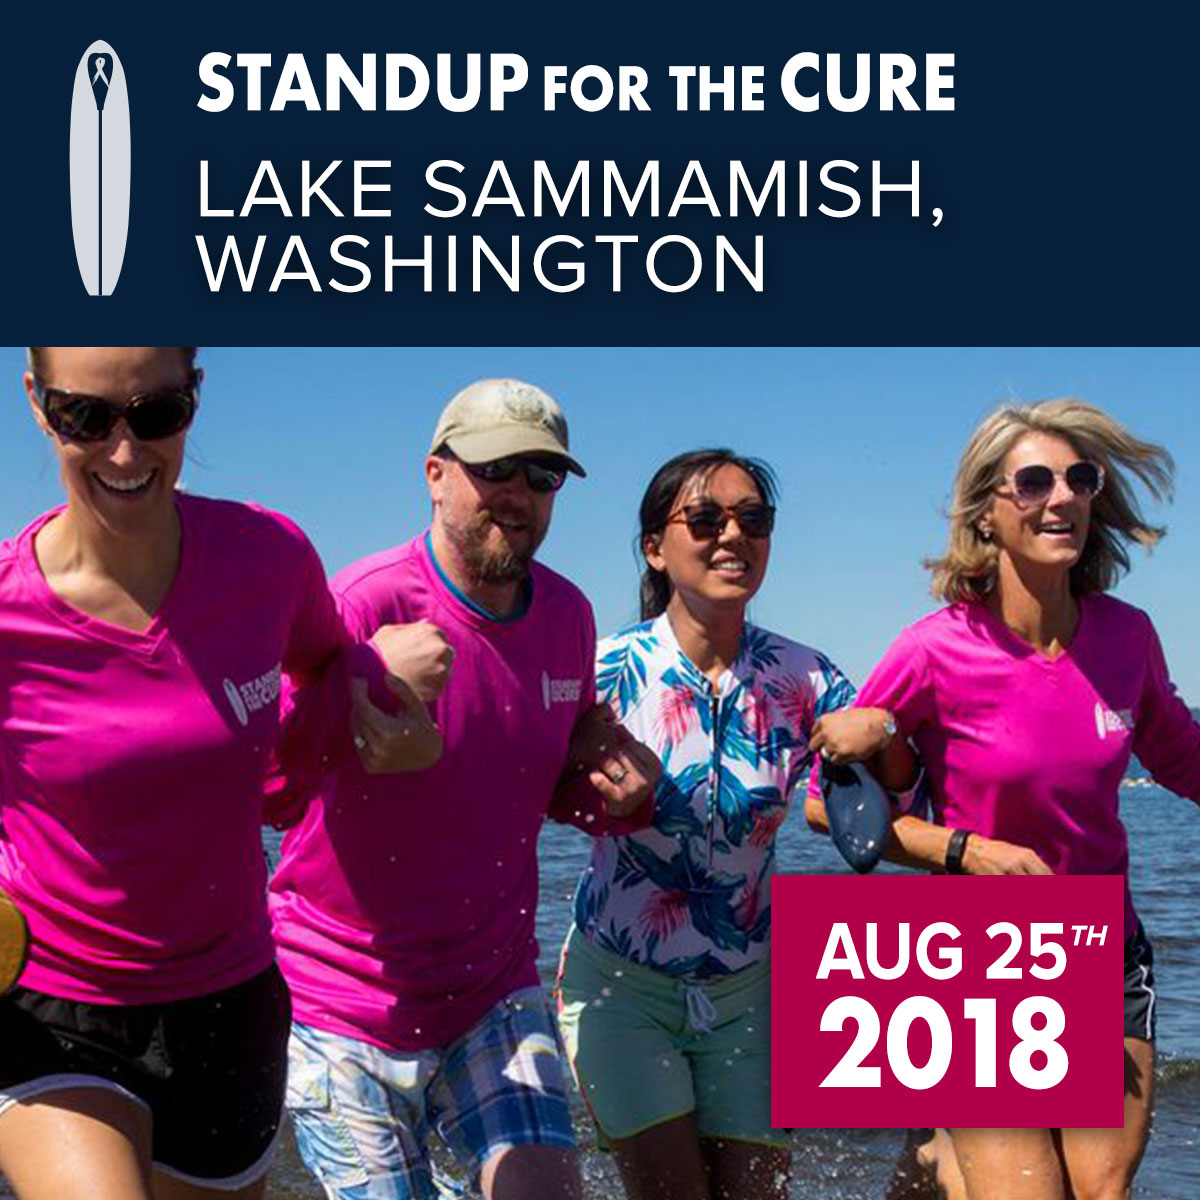 Seattle Standup for the Cure 2018 Photo